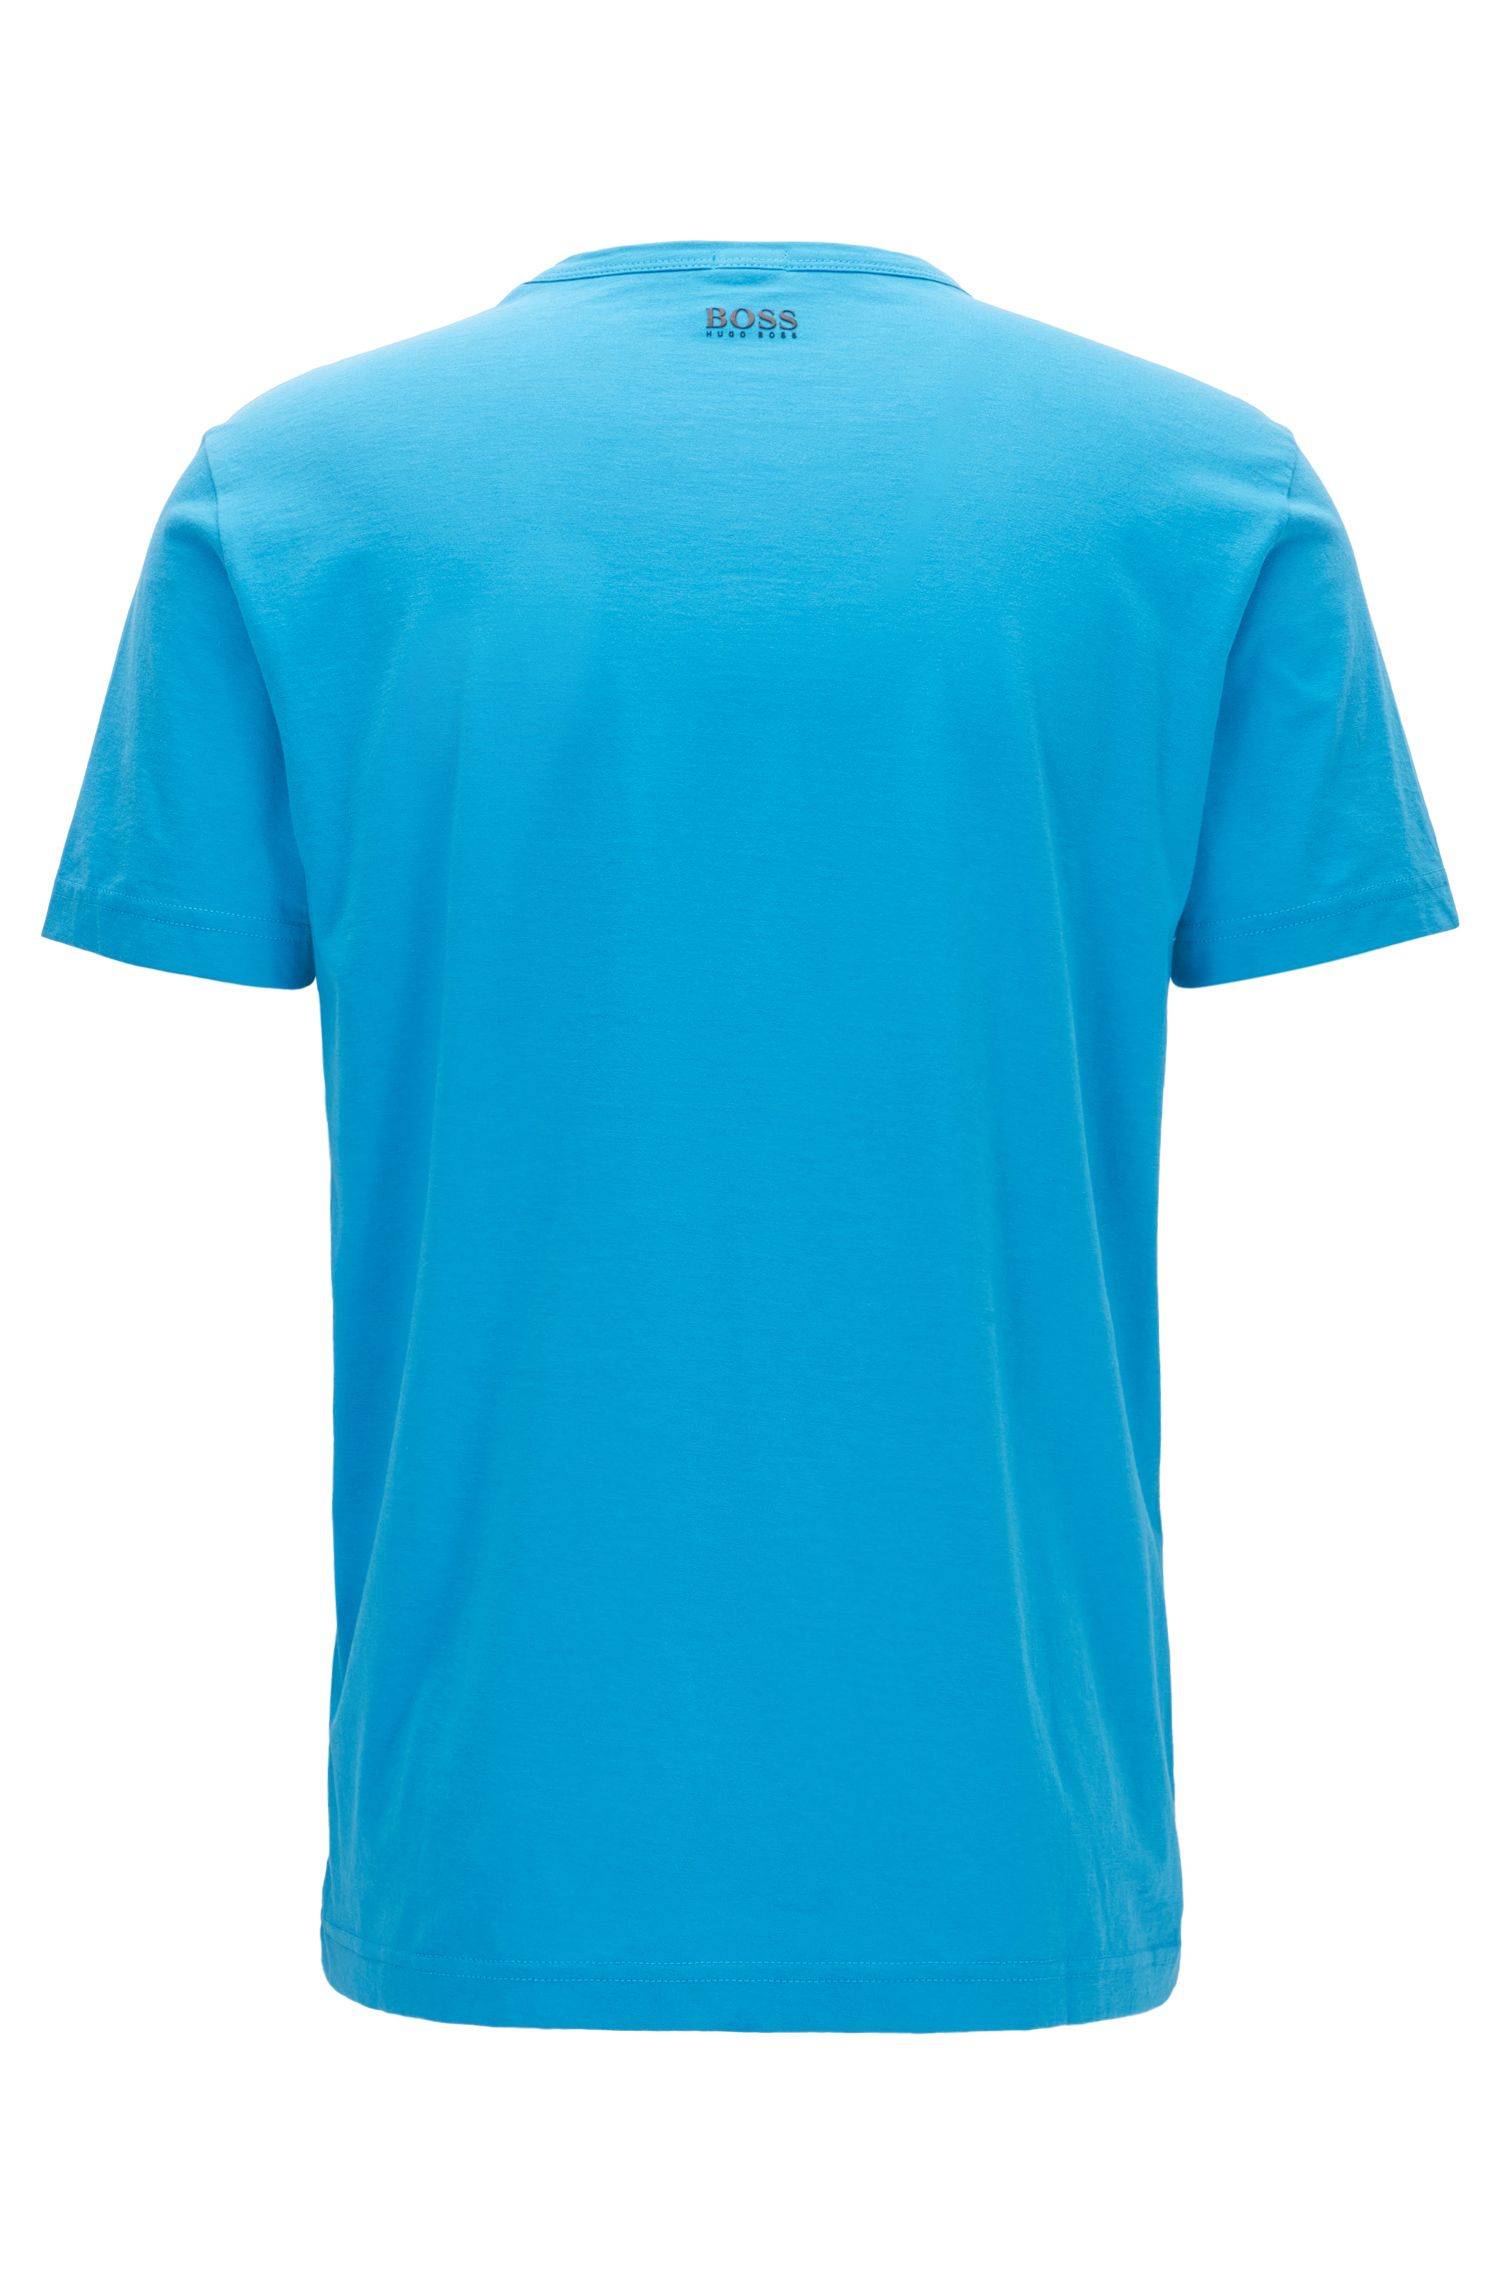 T-shirt regular fit in puro cotone con logo